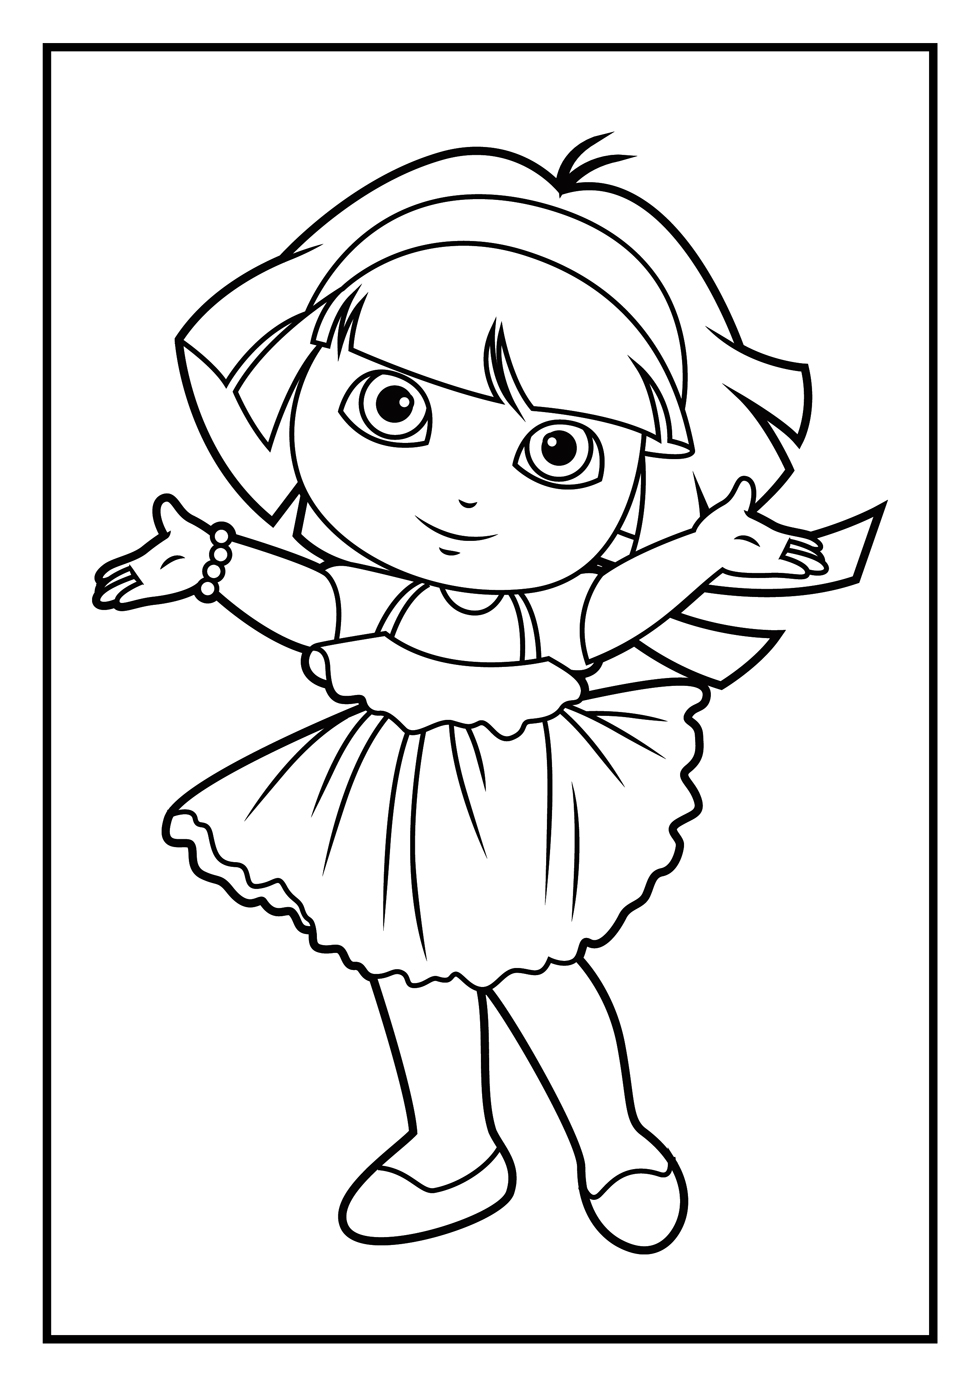 dora coloring pictures dora coloring pages only coloring pages coloring dora pictures